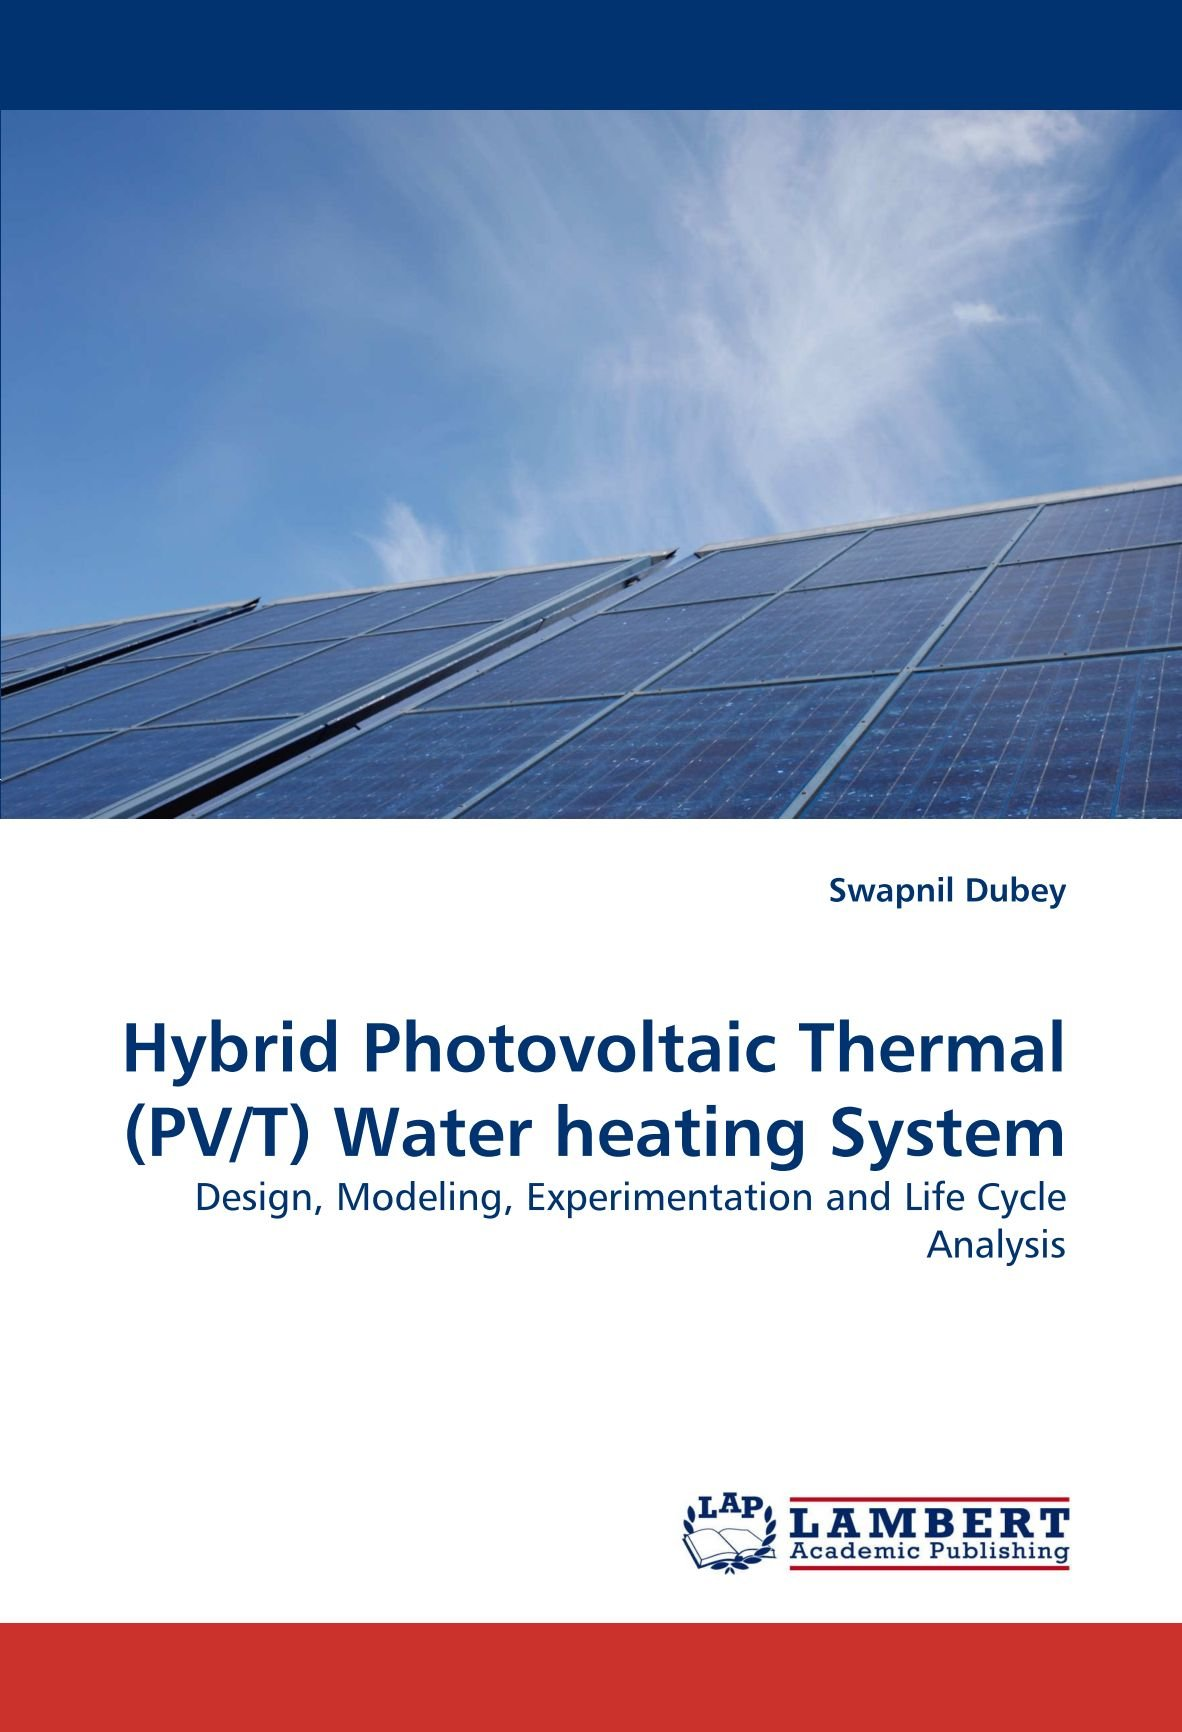 Hybrid Photovoltaic Thermal (PV/T) Water heating System: Design ...